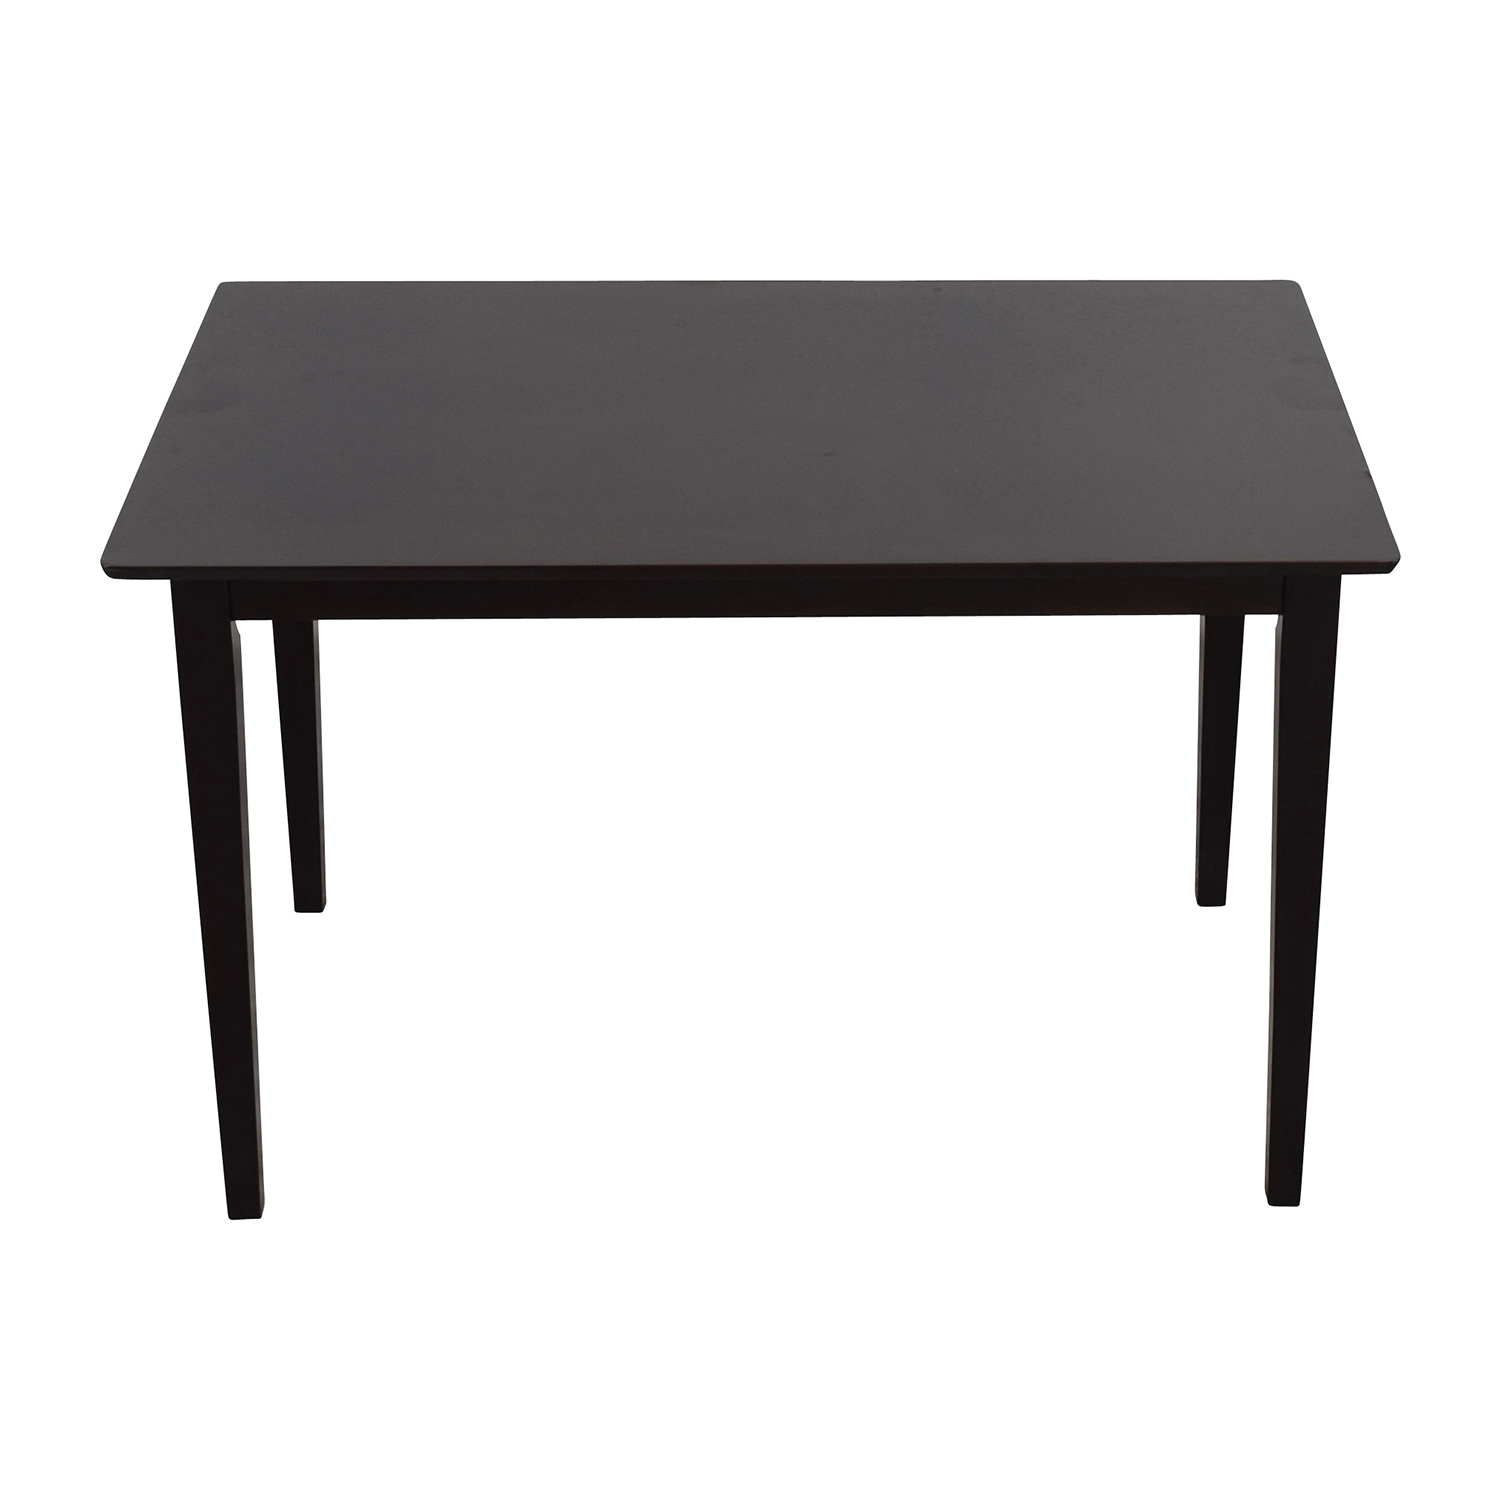 Coaster Home Furnishings Coaster Home Hyde Rectangular Casual Dining Leg Table nj